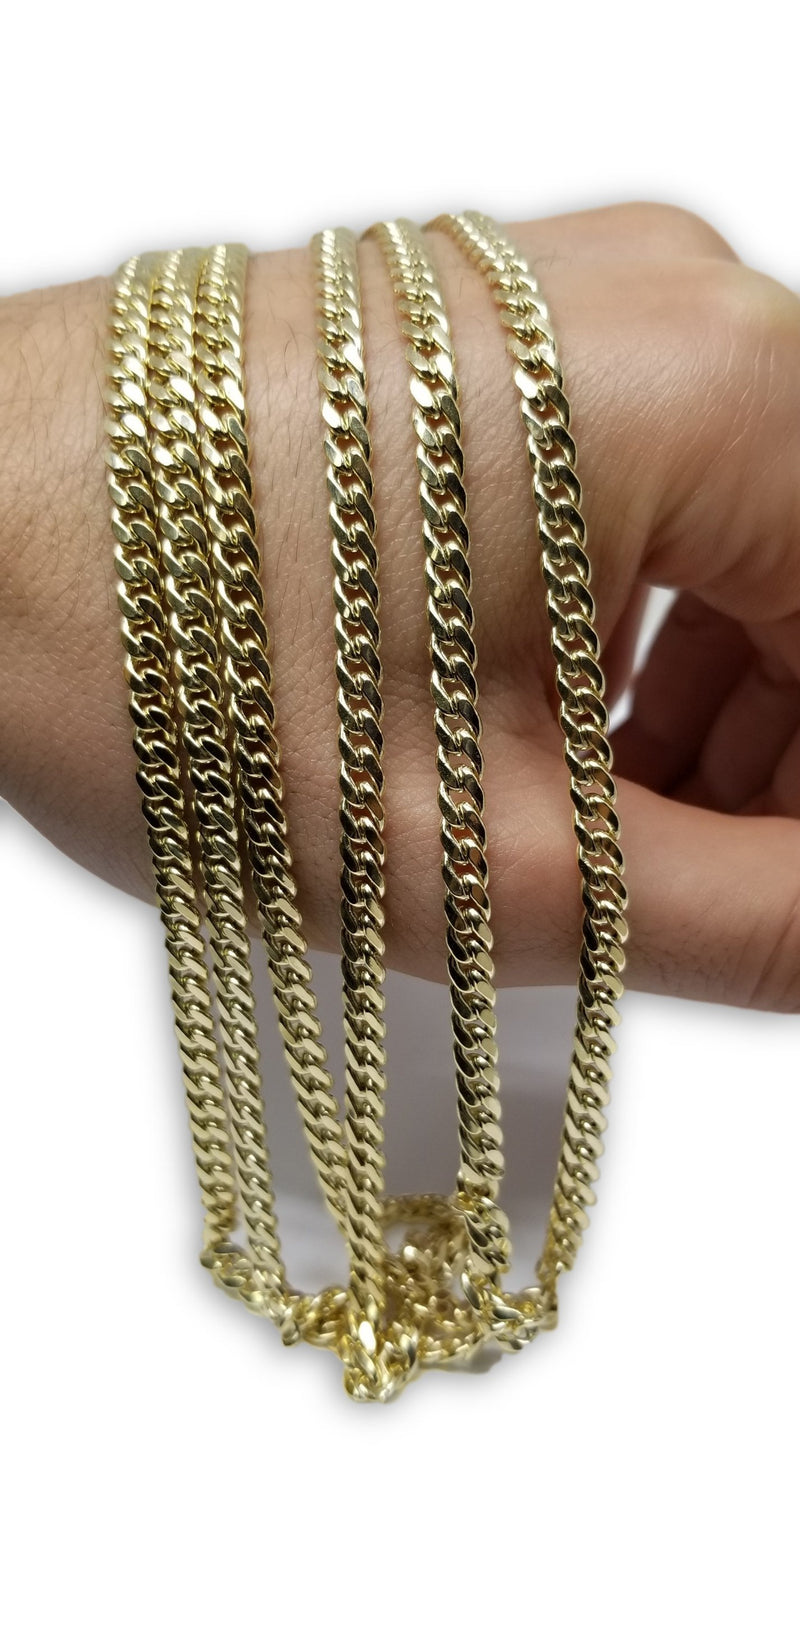 Chaine Miami Cuban Link 4.5mm en or 10k Italien | Miami Cuban Link Chain for Men 4.5mm Italian Yellow Gold 10k MC45-Gold Custom